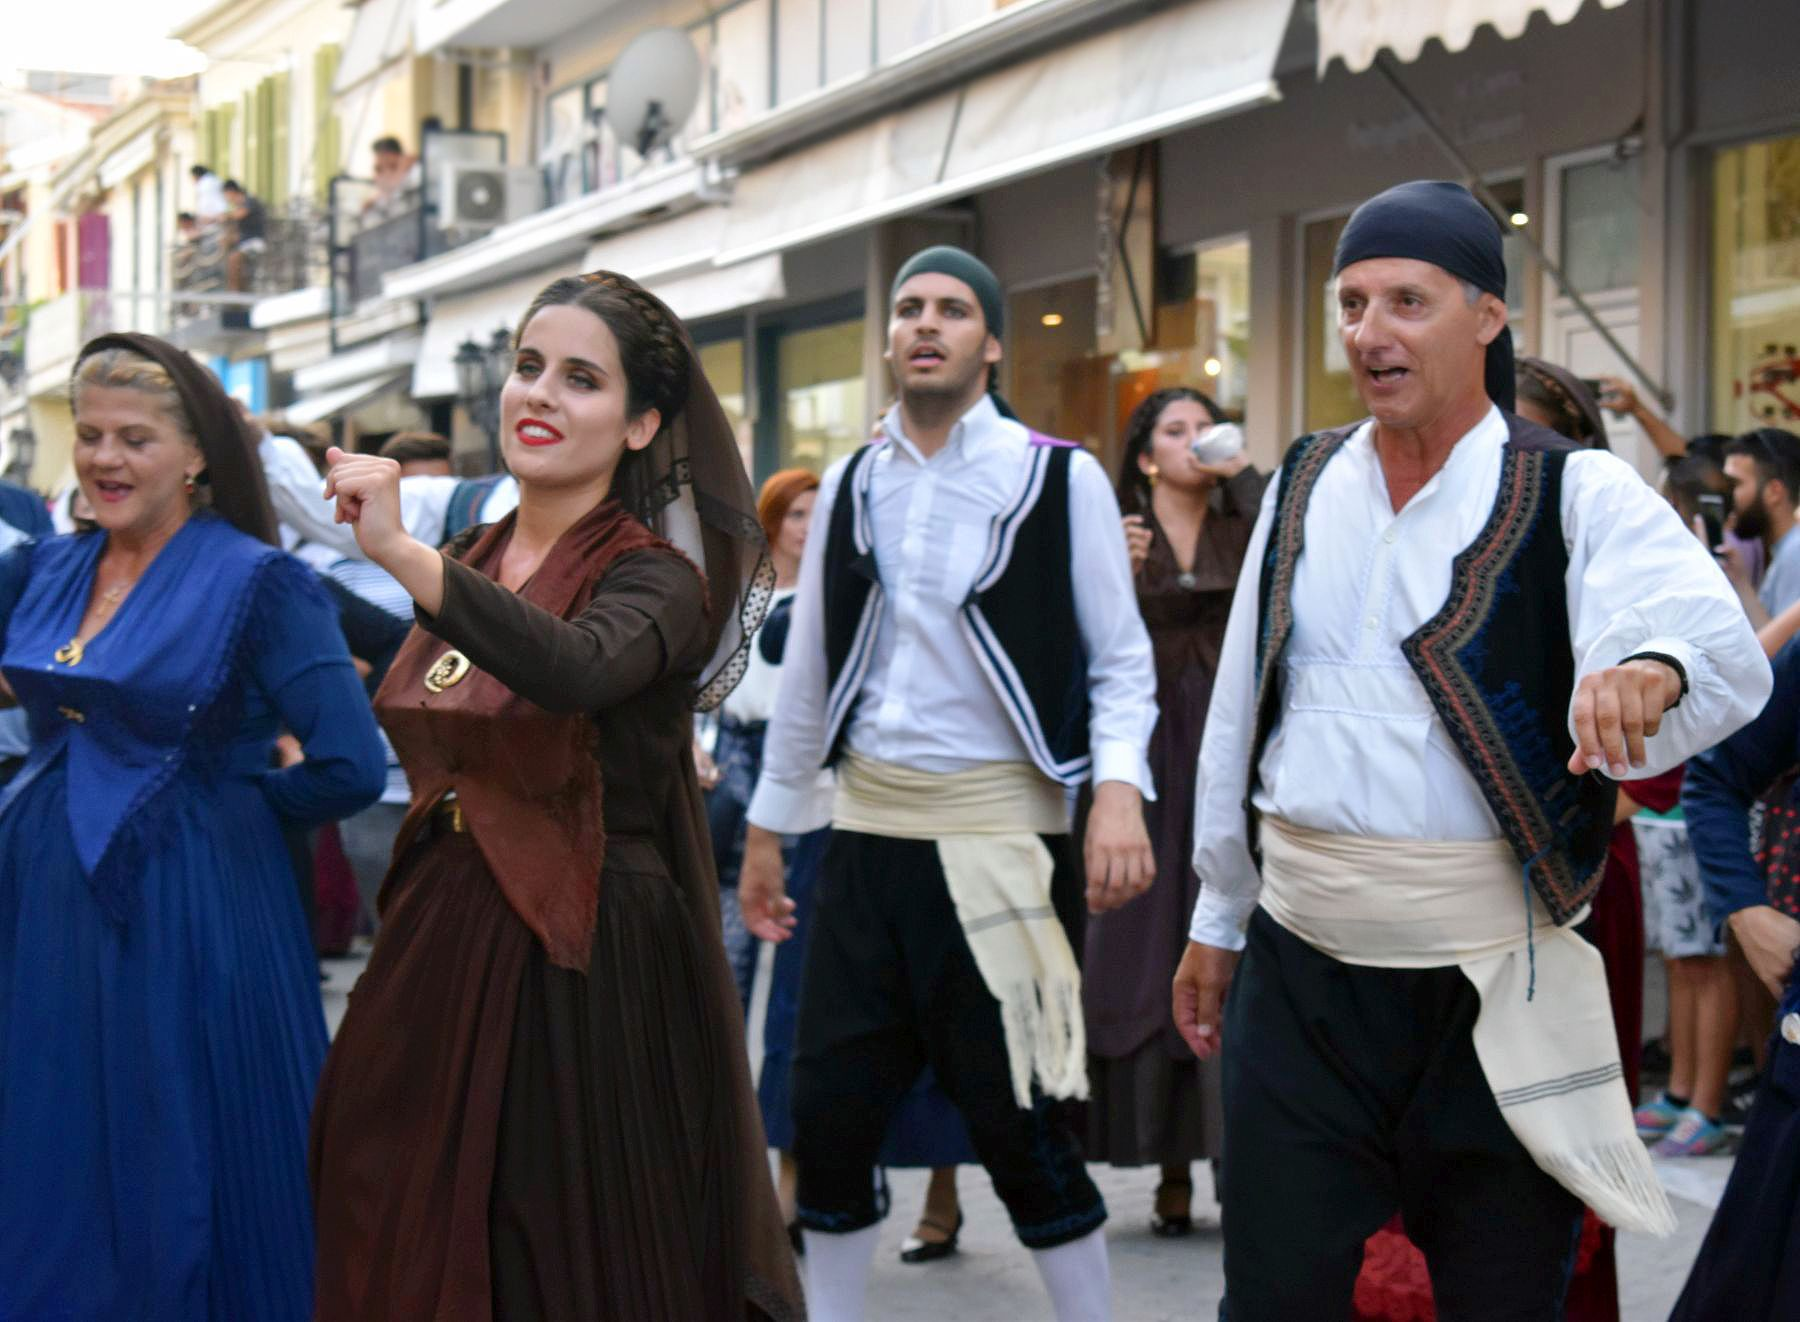 Dancers wearing traditional costumes, Lefkada Slow Guide